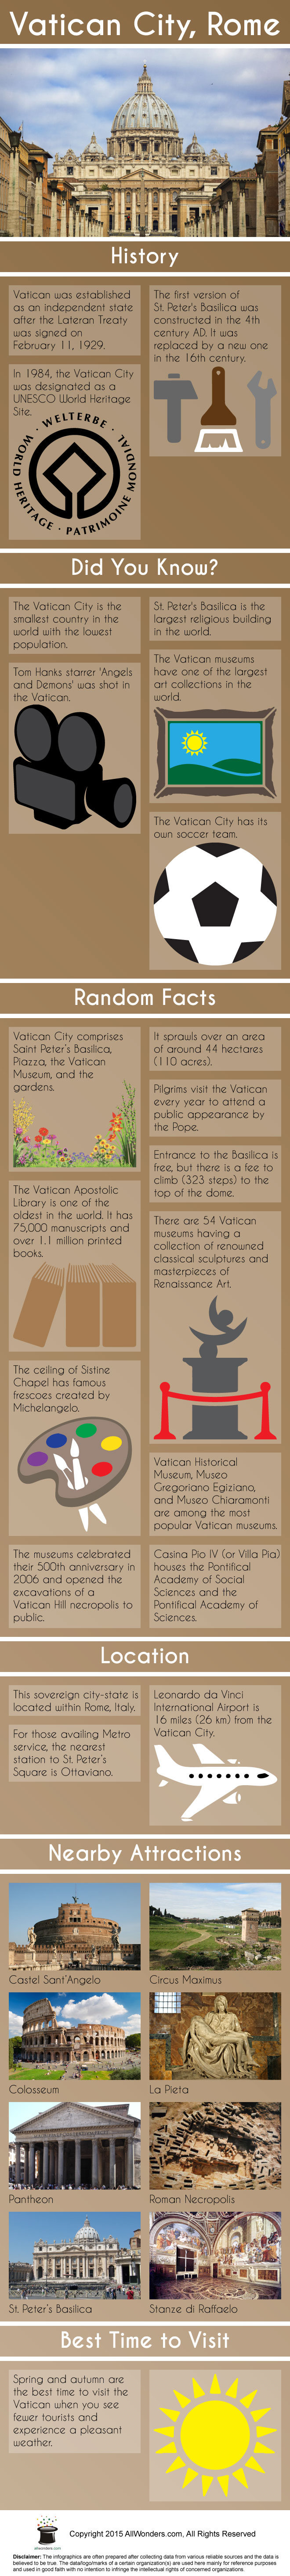 Vatican City Infographic